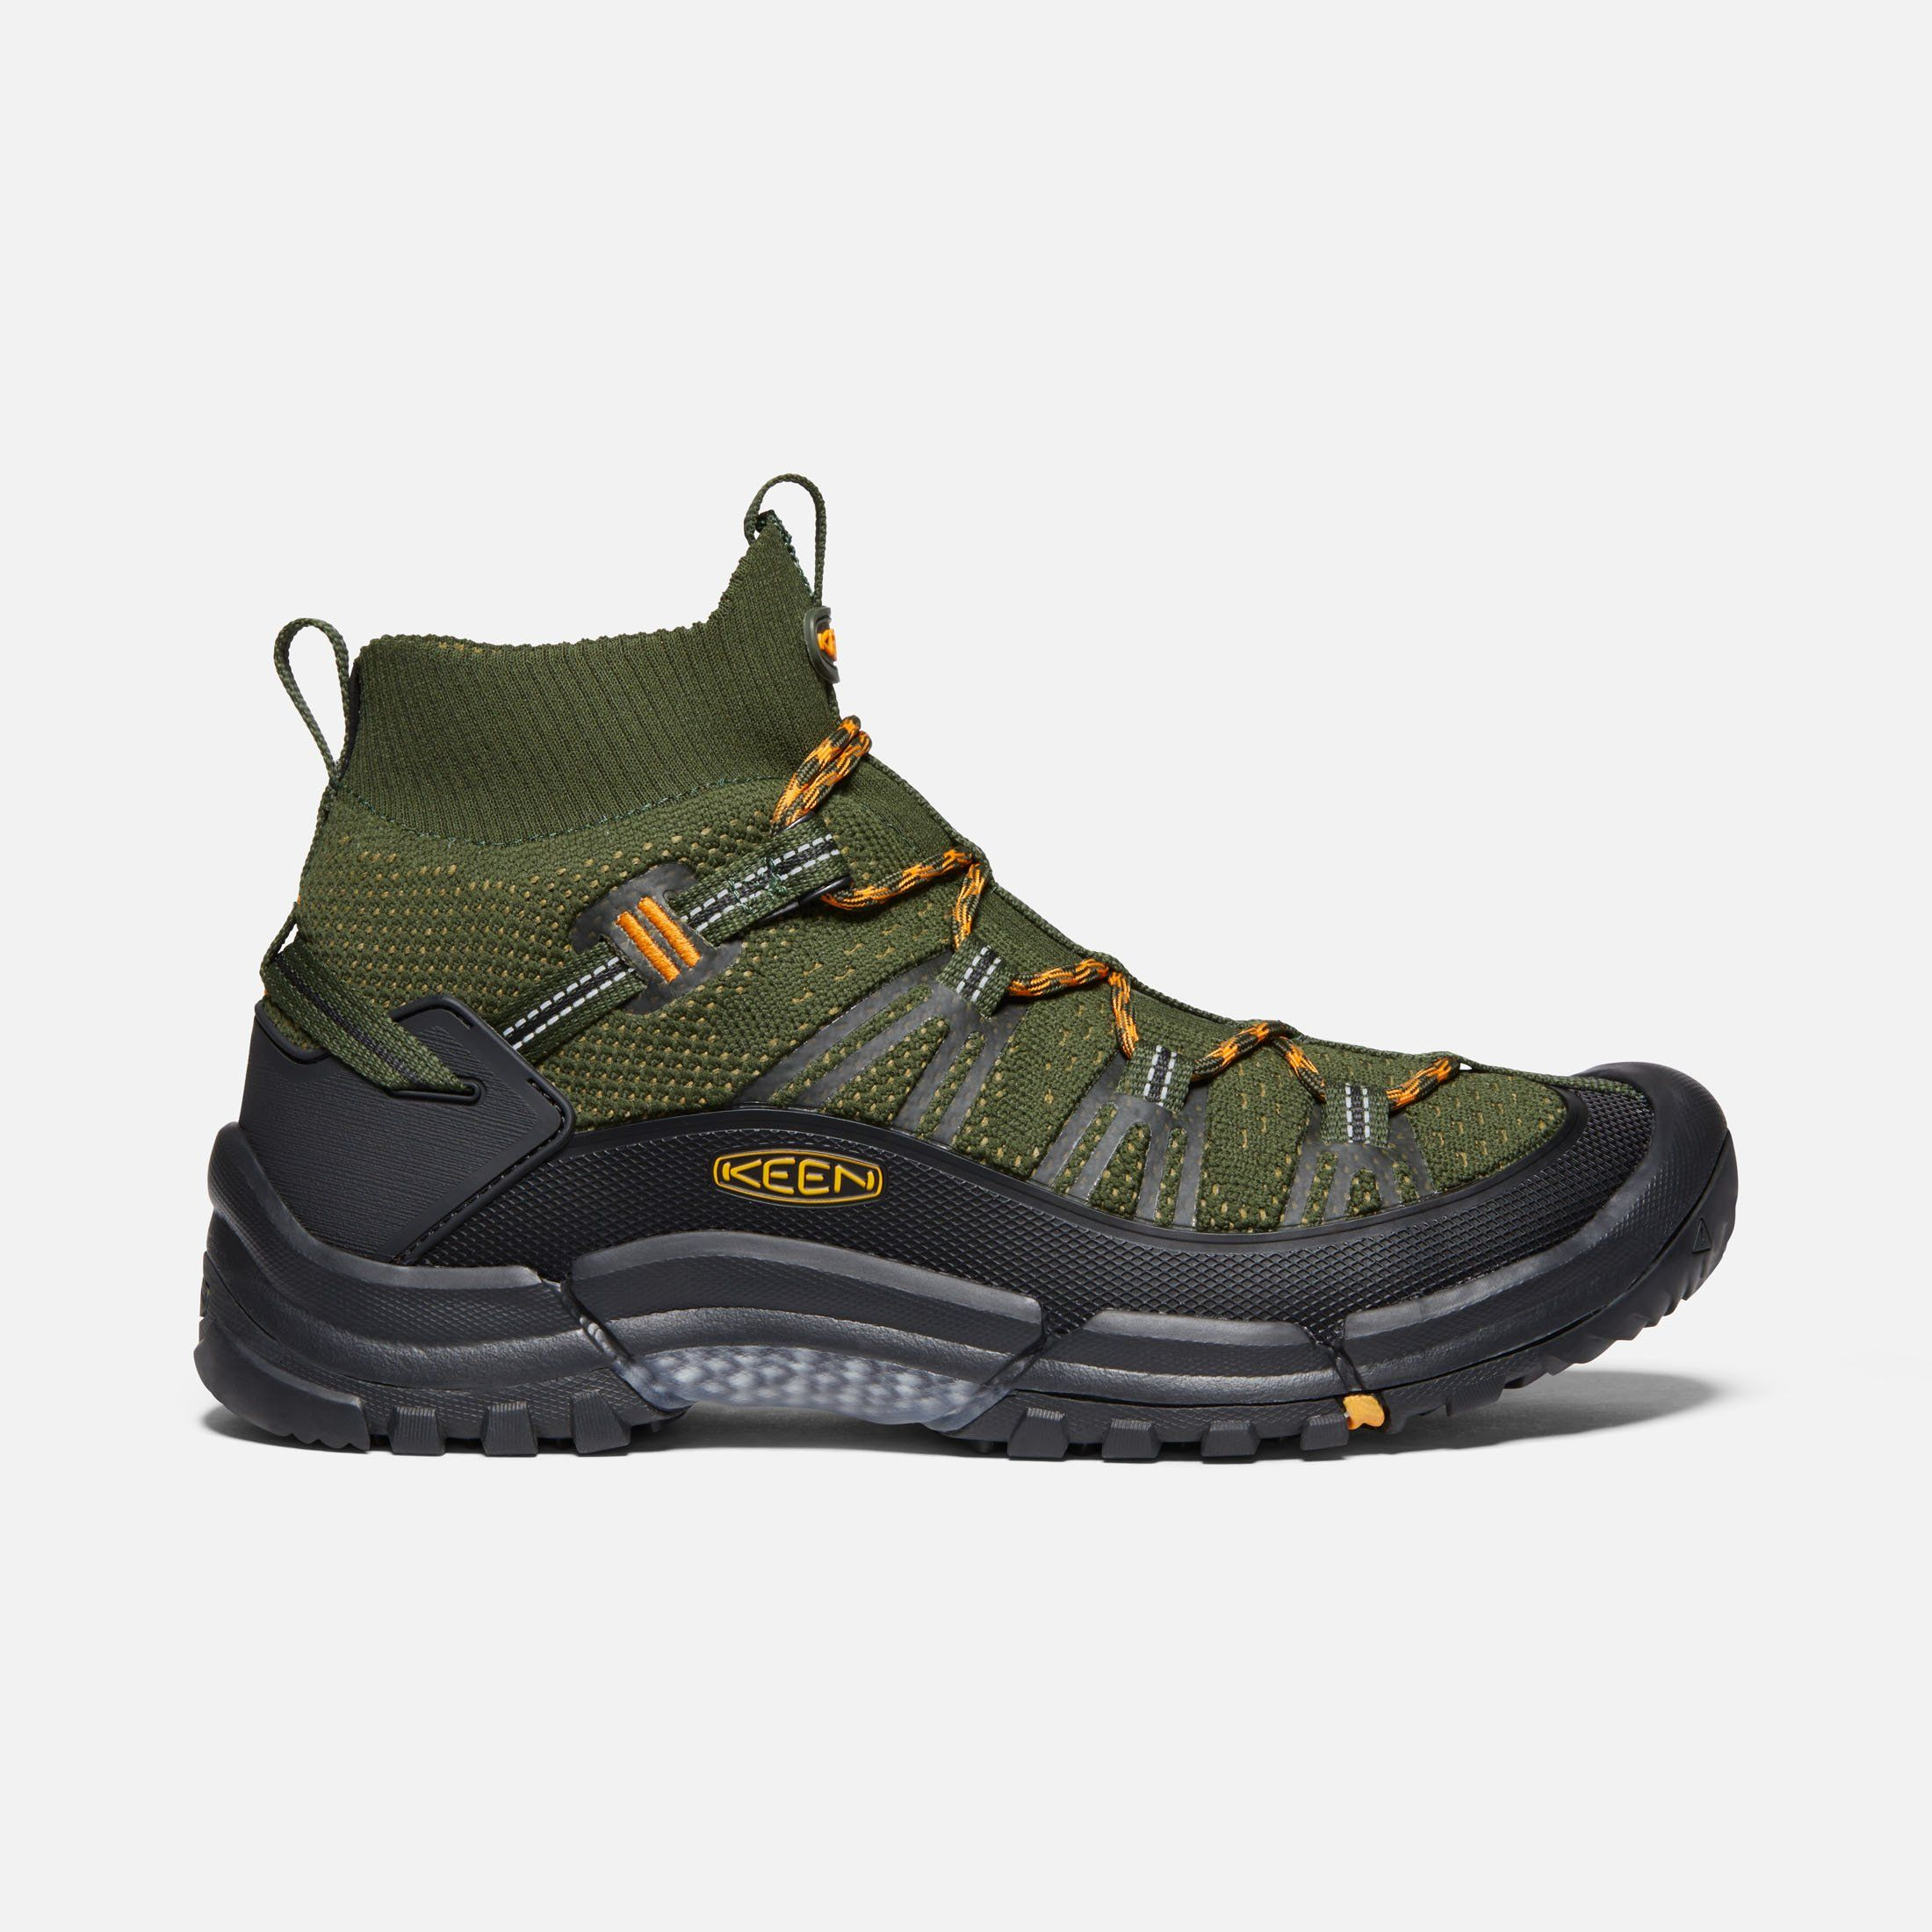 Keen Men S Hiking Axis Evo Mid Boots 13 Olive Night Marigold In